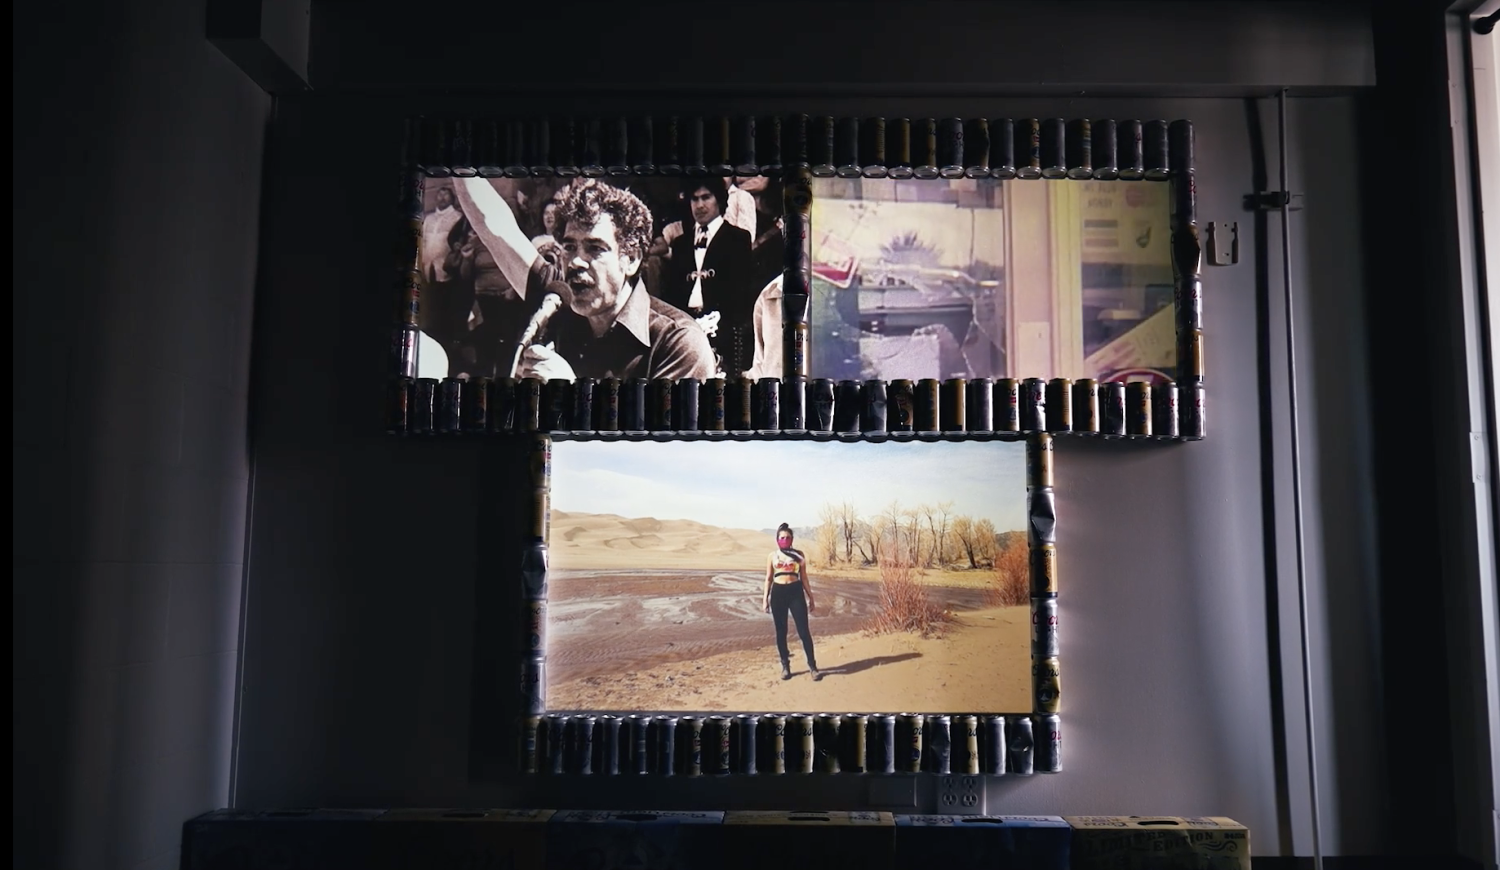 Andrea Fautheree Márquez's project with three screens all on their own loops and framed by Coors beer cans